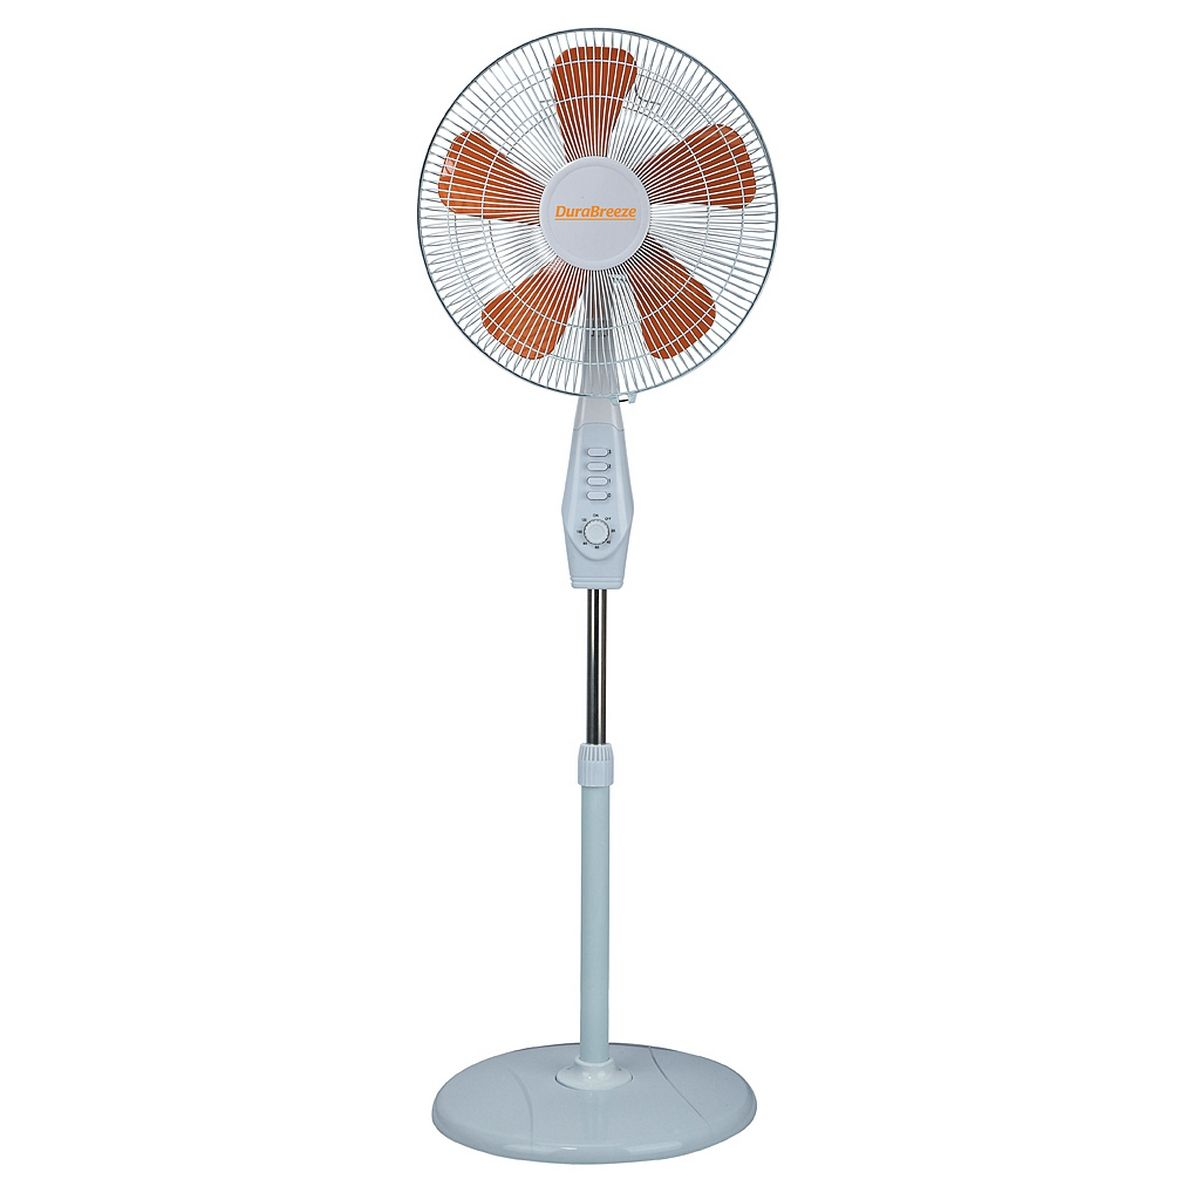 hot fan the for box pedestal pelonis stand white best accessories tool speed prepared adjustable oscillating fans tilt ceiling summer be